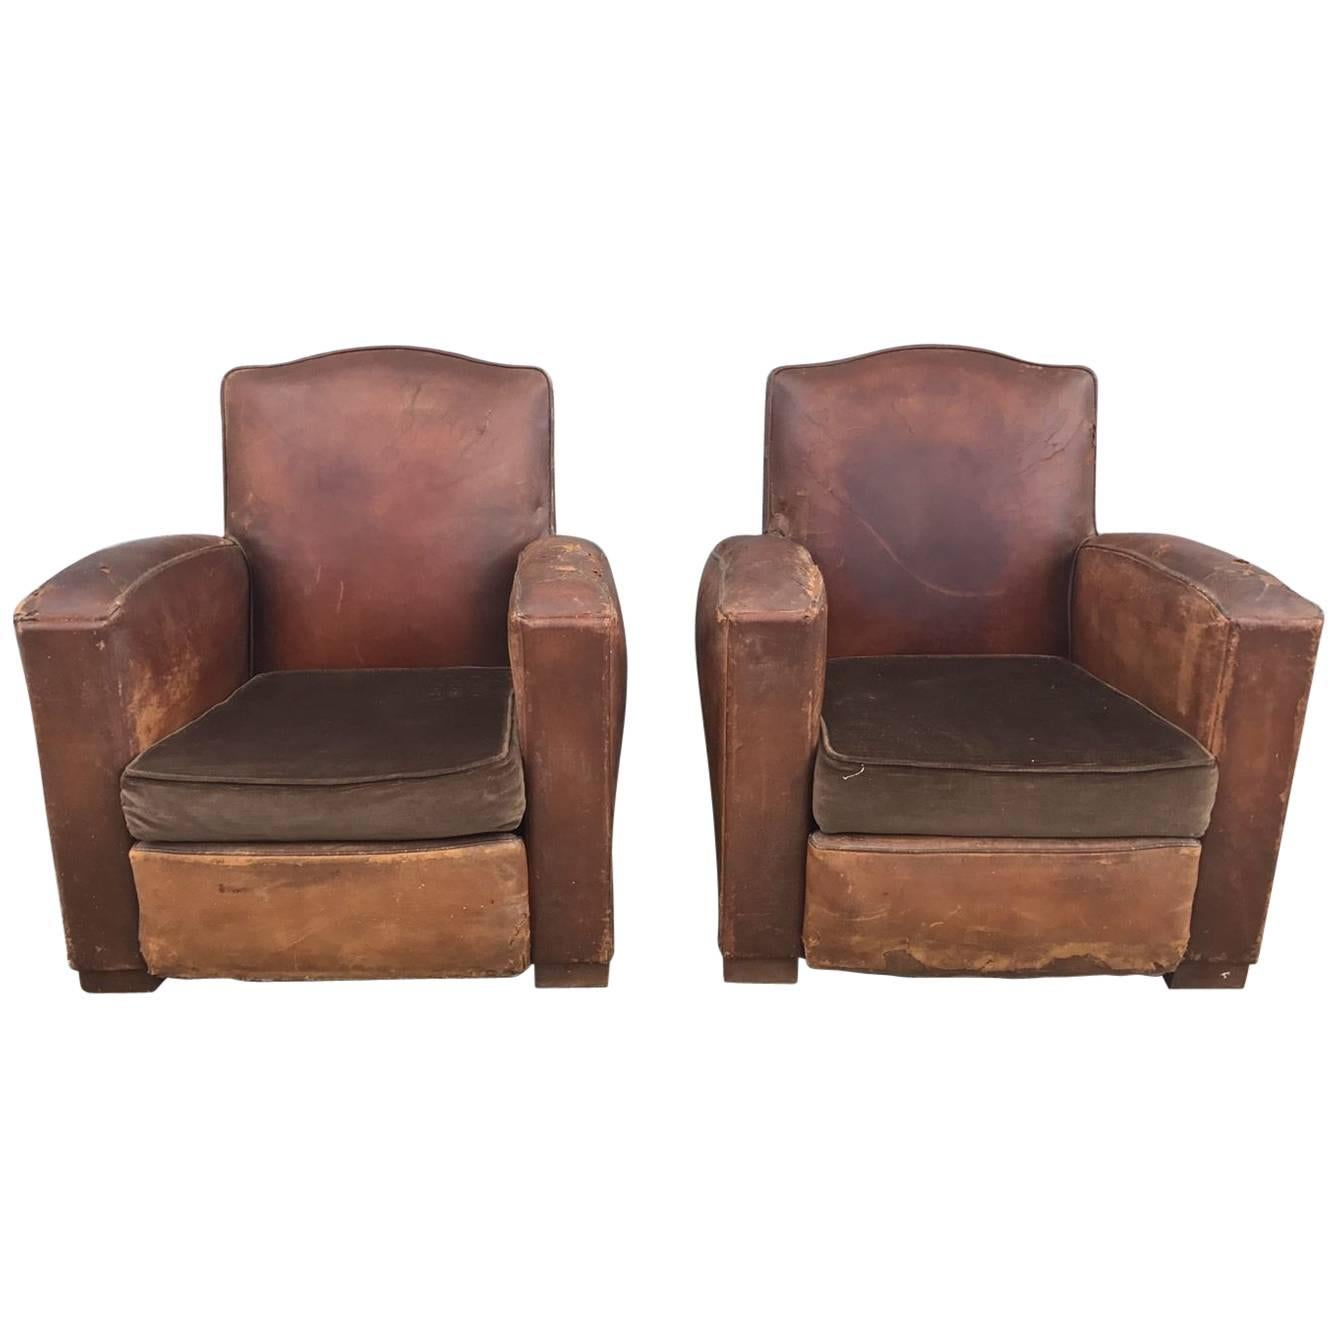 Beautiful French Leather Antique Club Chairs, Industrial, Vintage X2 For  Sale